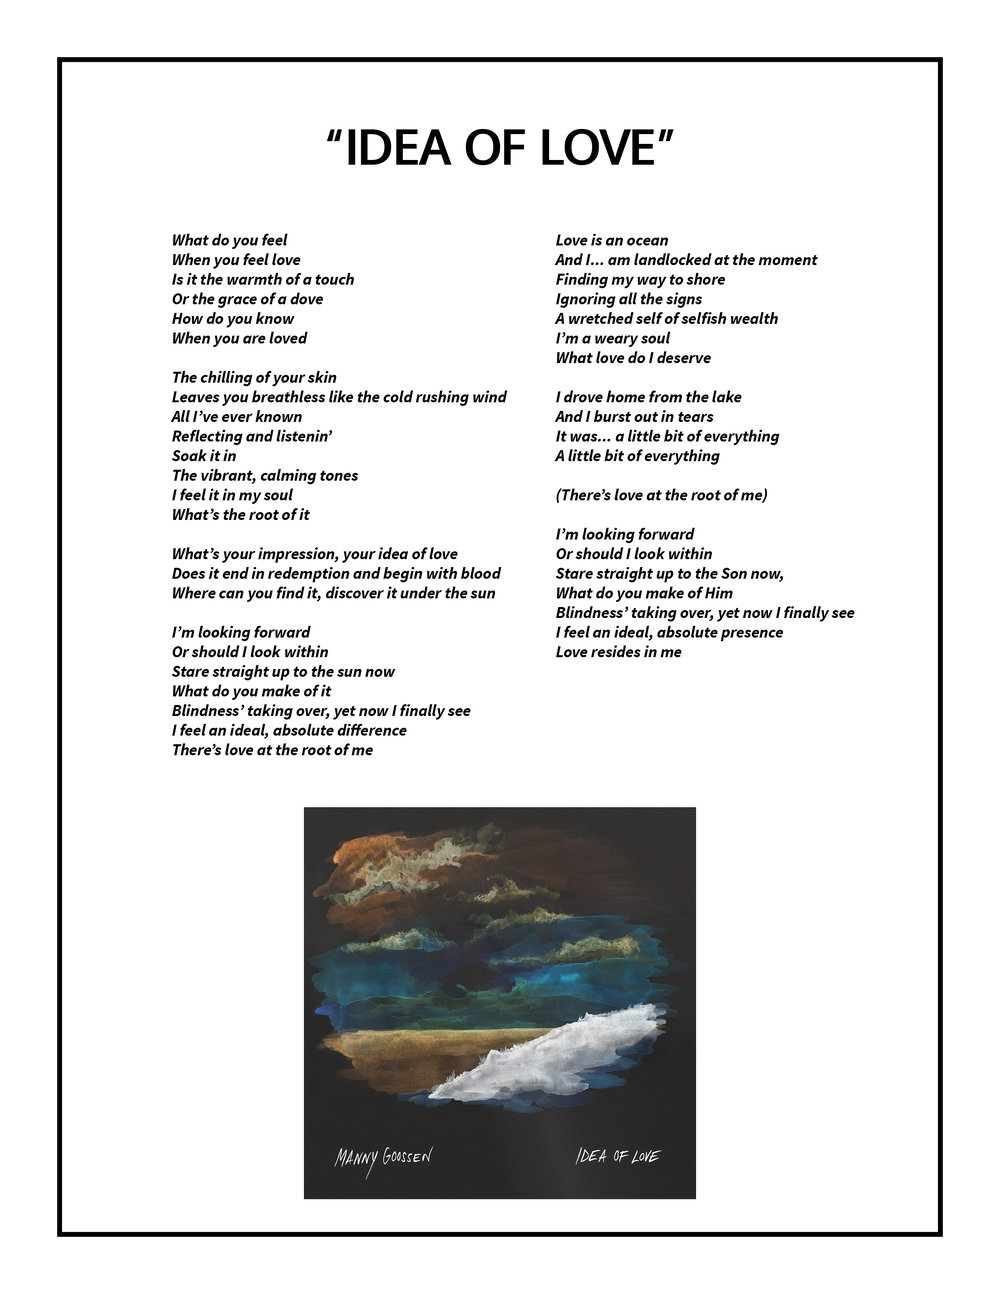 Idea of Love Lyrics